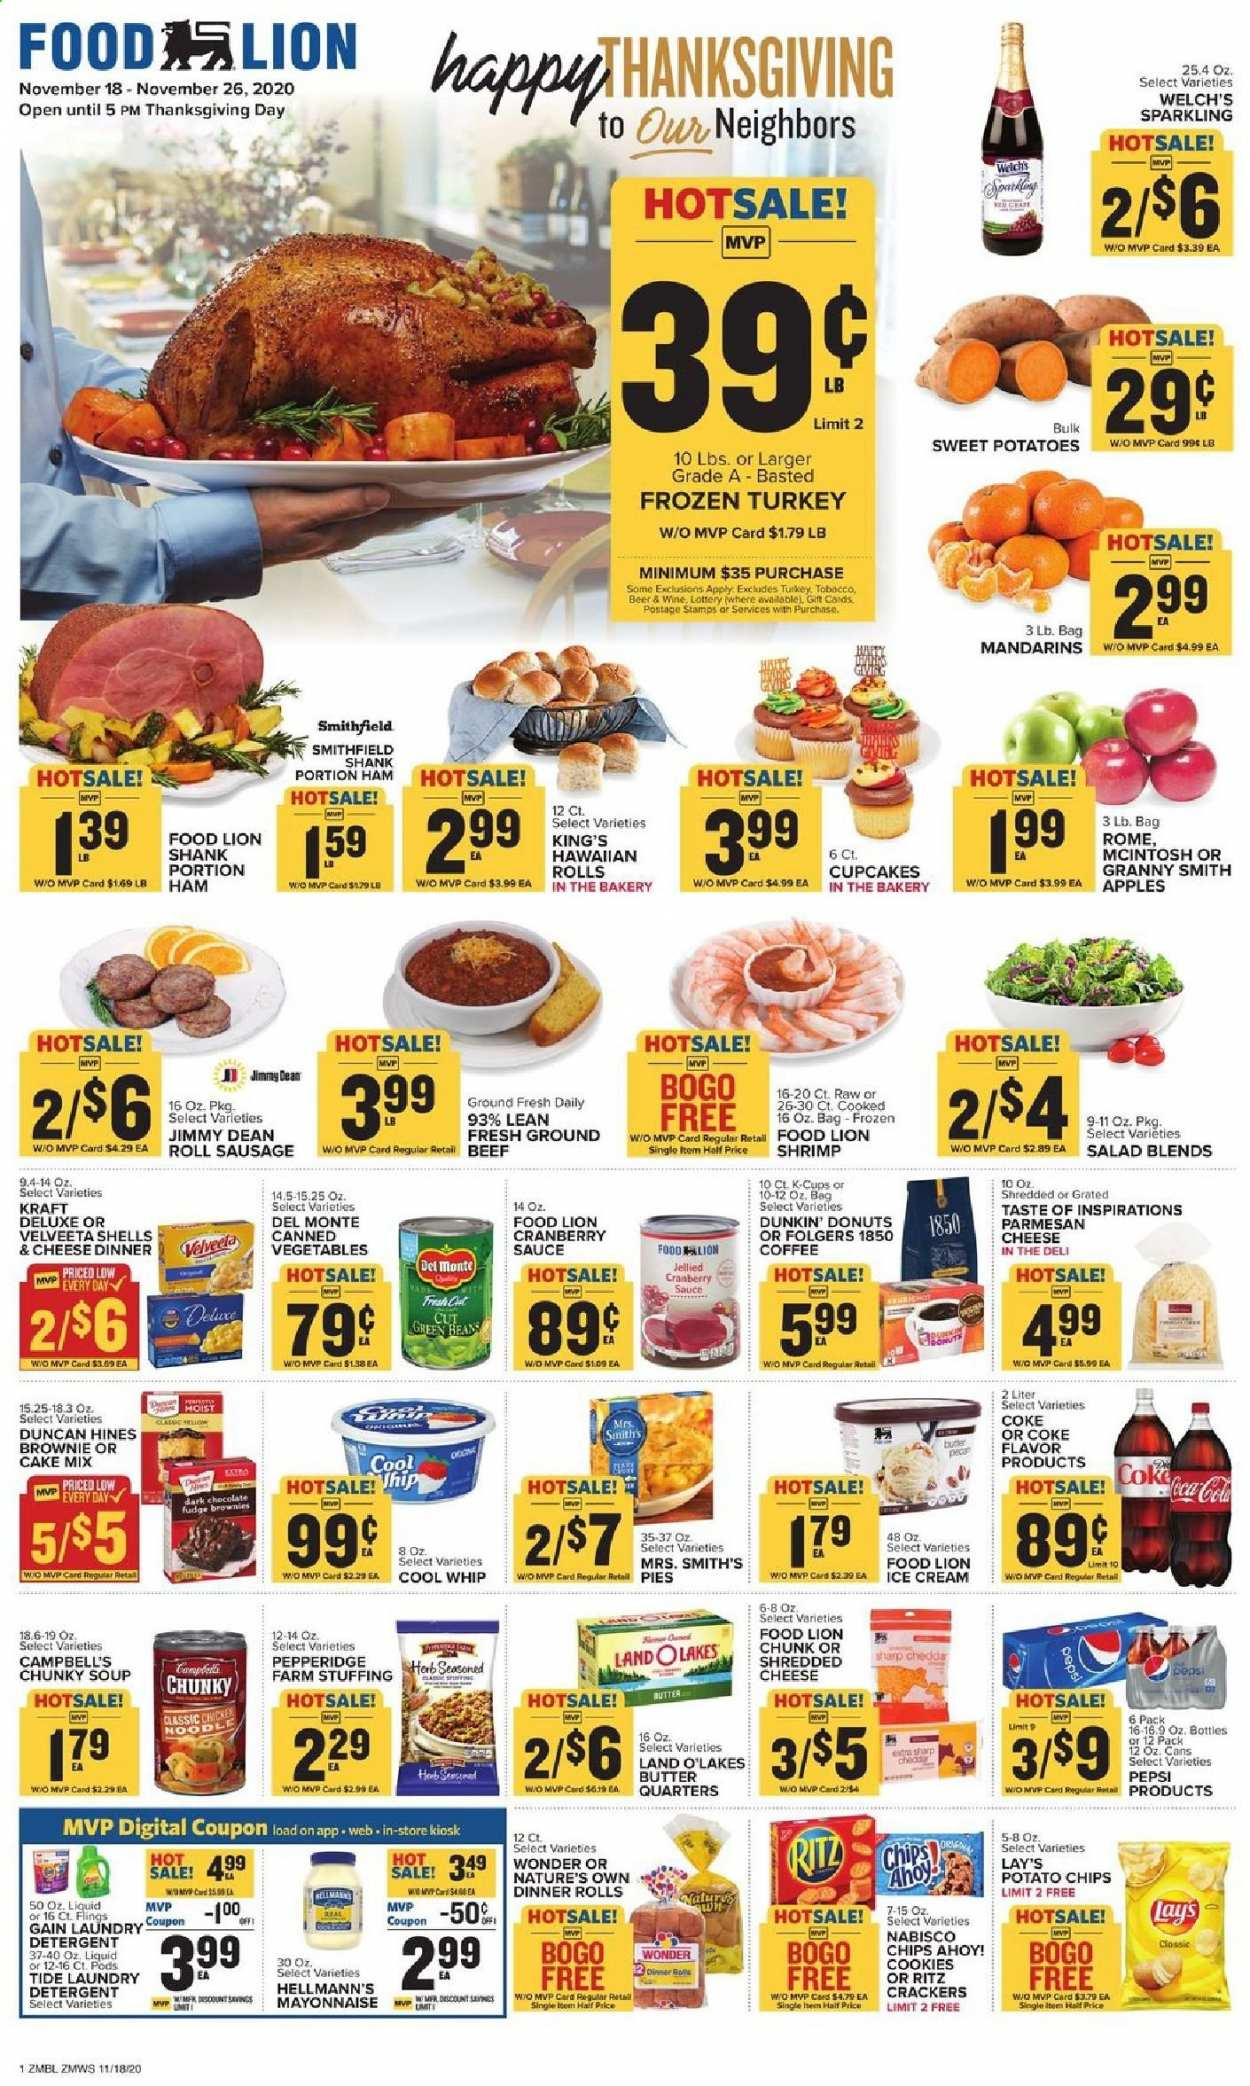 Food Lion Flyer - 11.18.2020 - 11.26.2020 - Sales products - apples, beef meat, beer, butter, cake mix, Campbell's, Coca-Cola, coffee, cookies, Cool Whip, cranberry sauce, detergent, frozen turkey, fudge, Gain, mayonnaise, sausage, Sharp, shredded cheese, sweet potatoes, Tide, turkey, hawaiian rolls, ice cream, potatoes, cheddar, parmesan, Pepsi, chips, cheese, cake, soup, canned vegetables, Vegetables, Lay's, wine, salad, herb, sauce, brownie, laundry detergent, Folgers, cool, Apple, shrimps, donut, vegetable. Page 1.